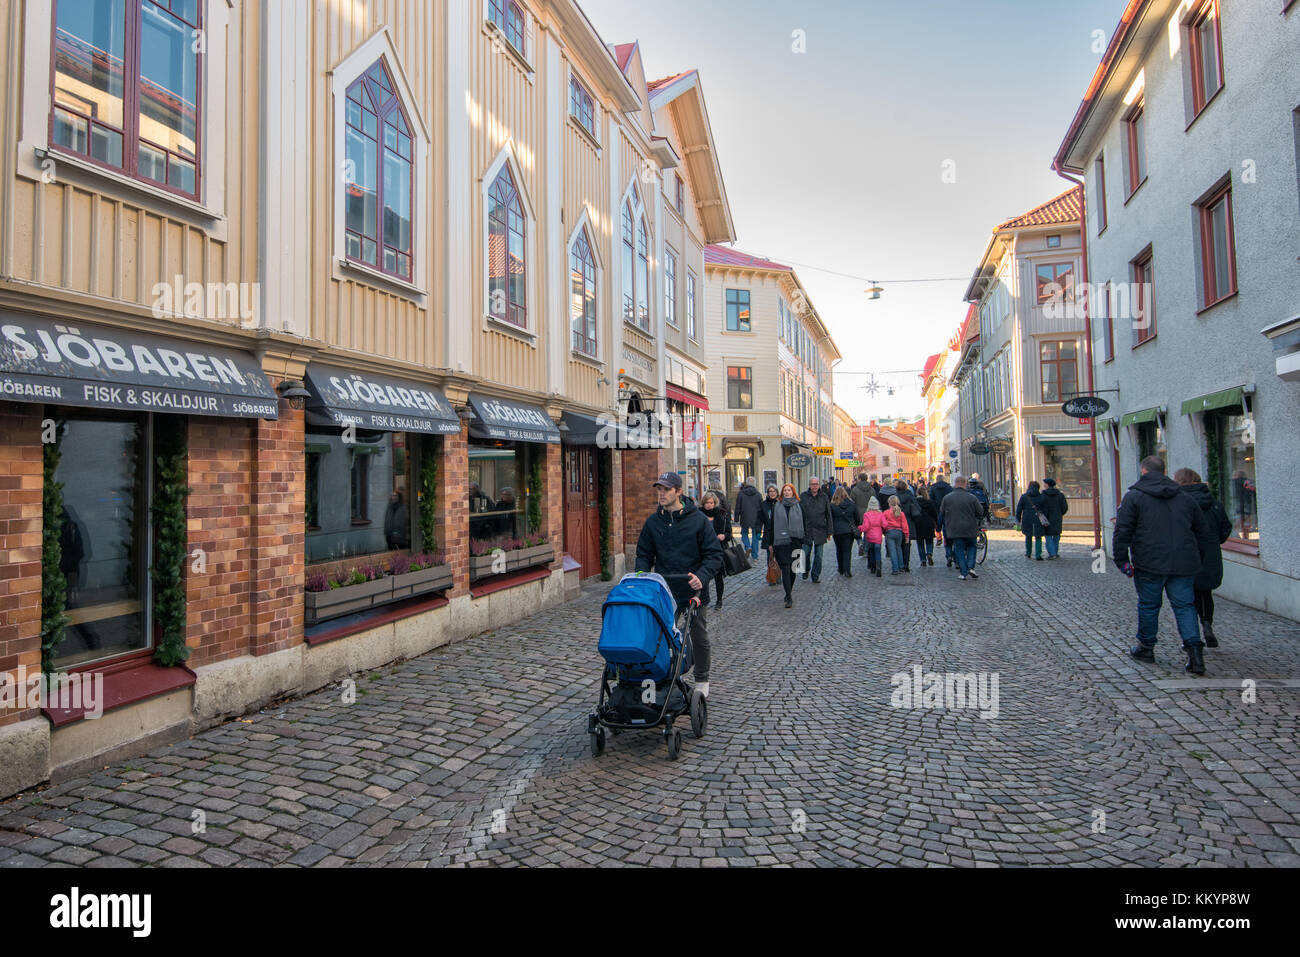 People stroll the streets of Haga in Gothenburg. Haga is a historic residential area, which has become fashionable - Stock Image